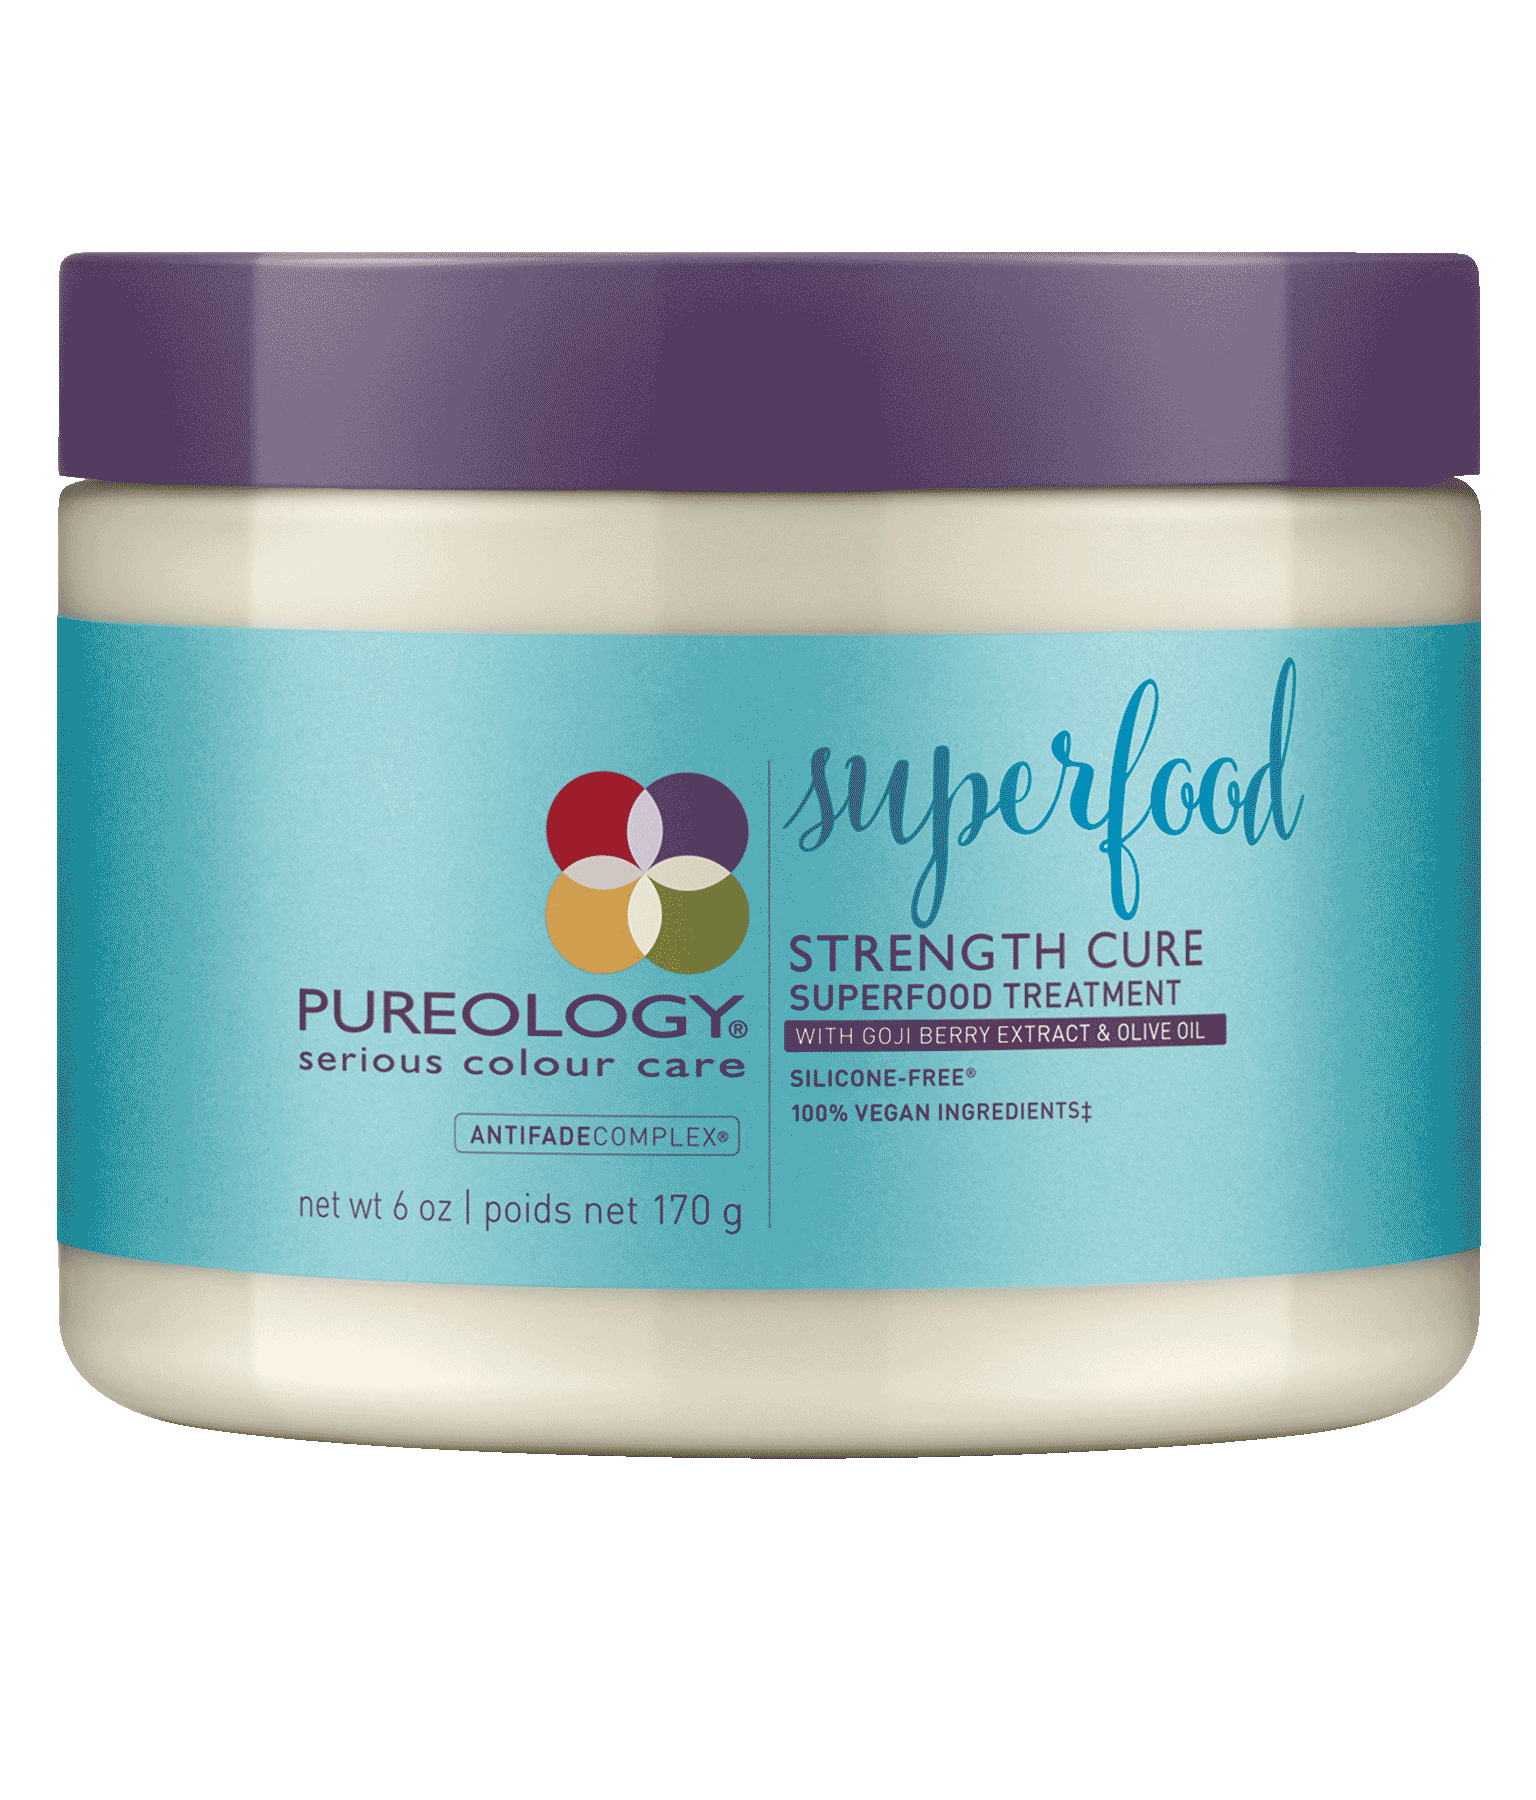 Strength Cure Superfood Treatment Mask For Damaged Hair Pureology